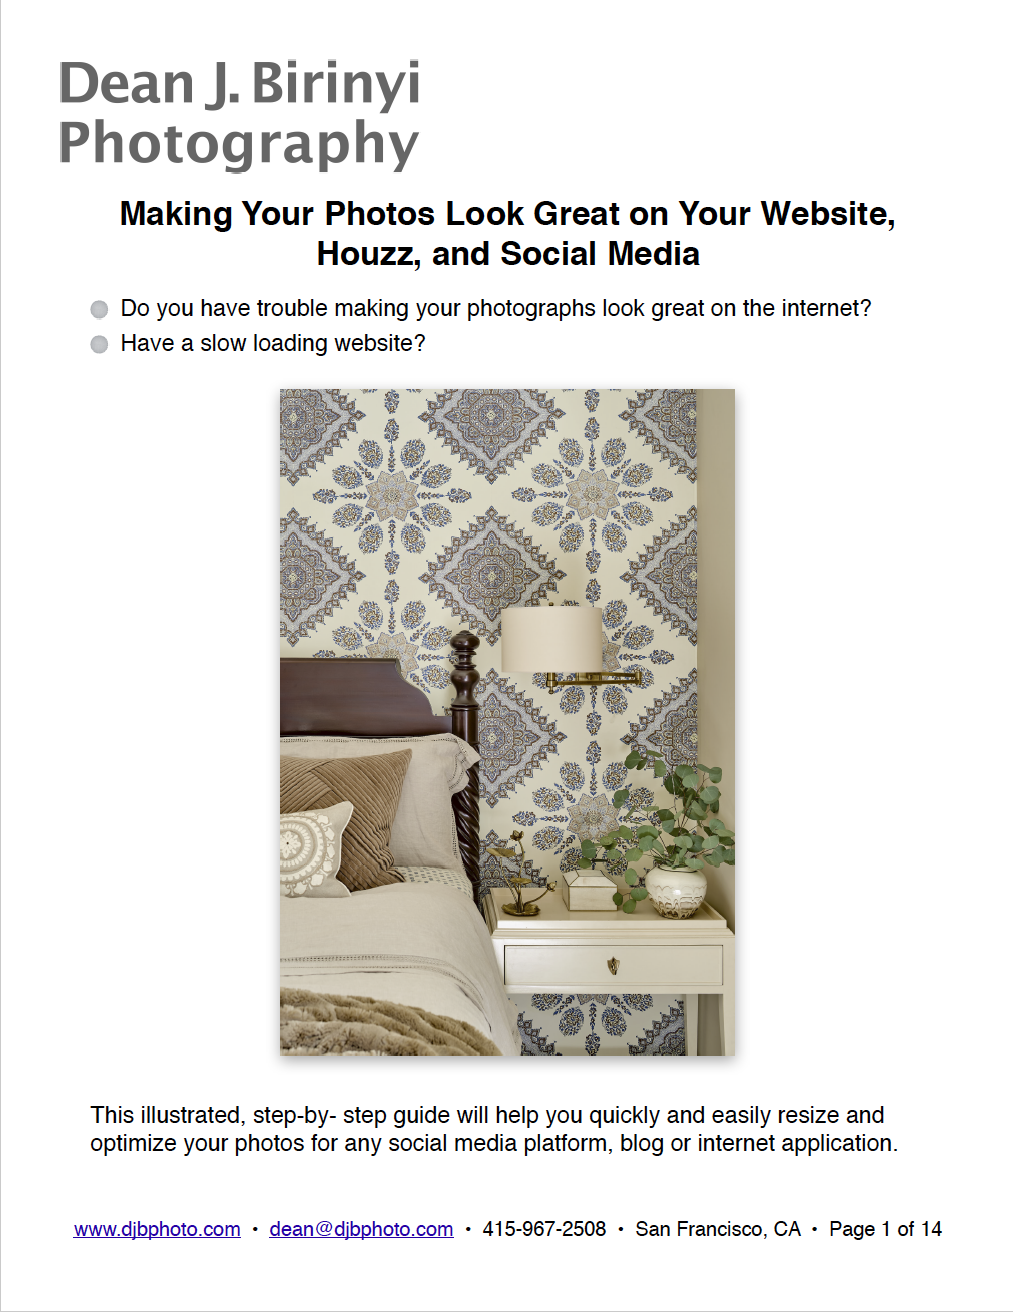 Making Your Photos Look Great On The Internet And Social Media Cover